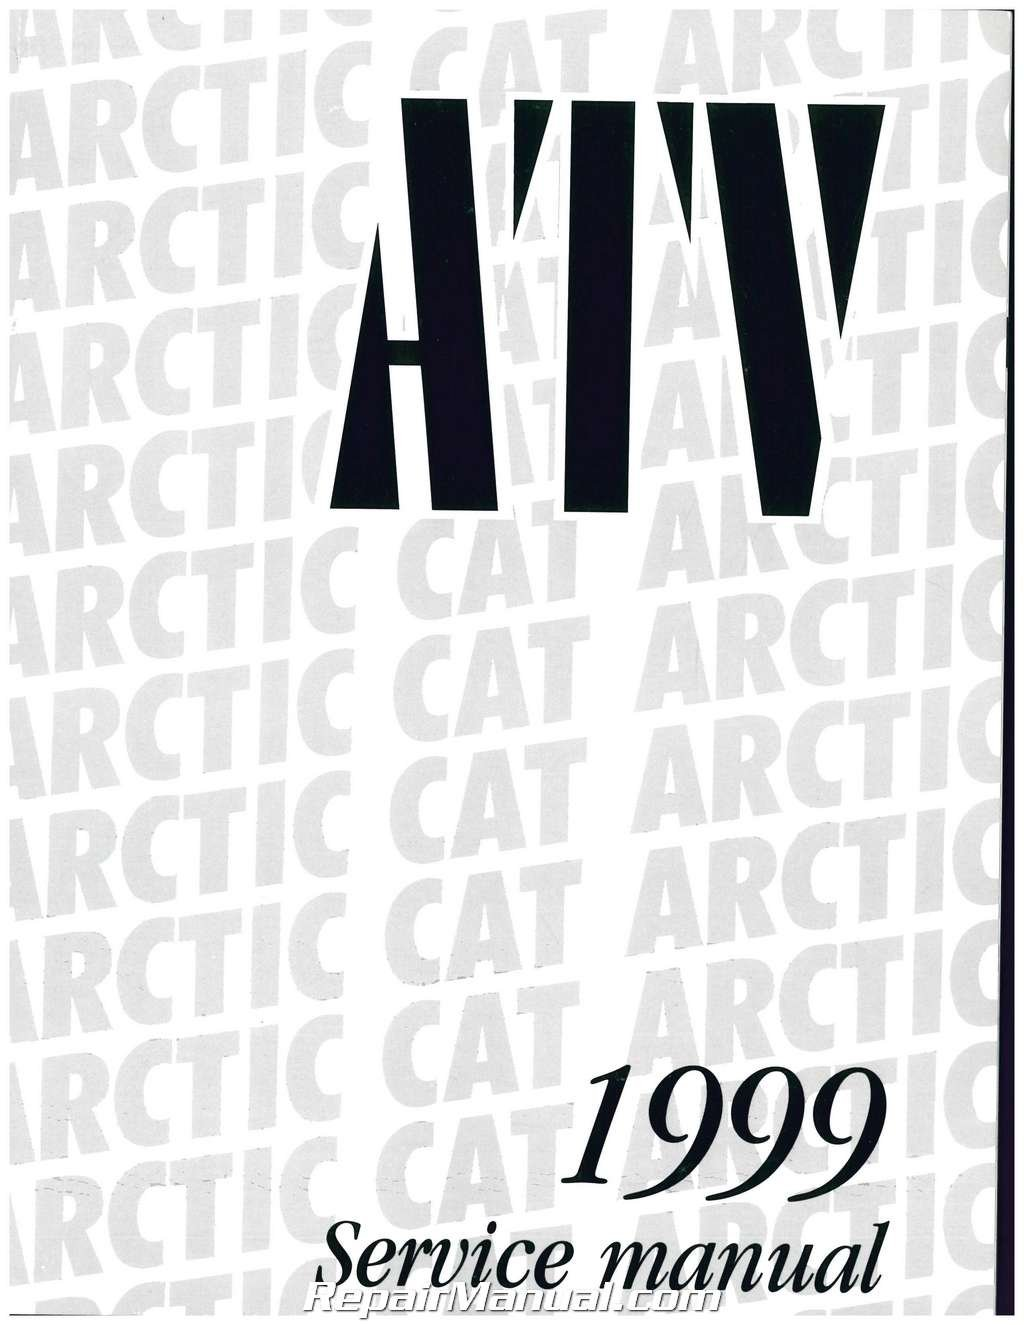 2256-089 1999 Arctic Cat 500 4X4, 400 4X4, 300 4X4, 300 2X4, 250 2X4 ATV  Service Manual: Manufacturer: Amazon.com: Books